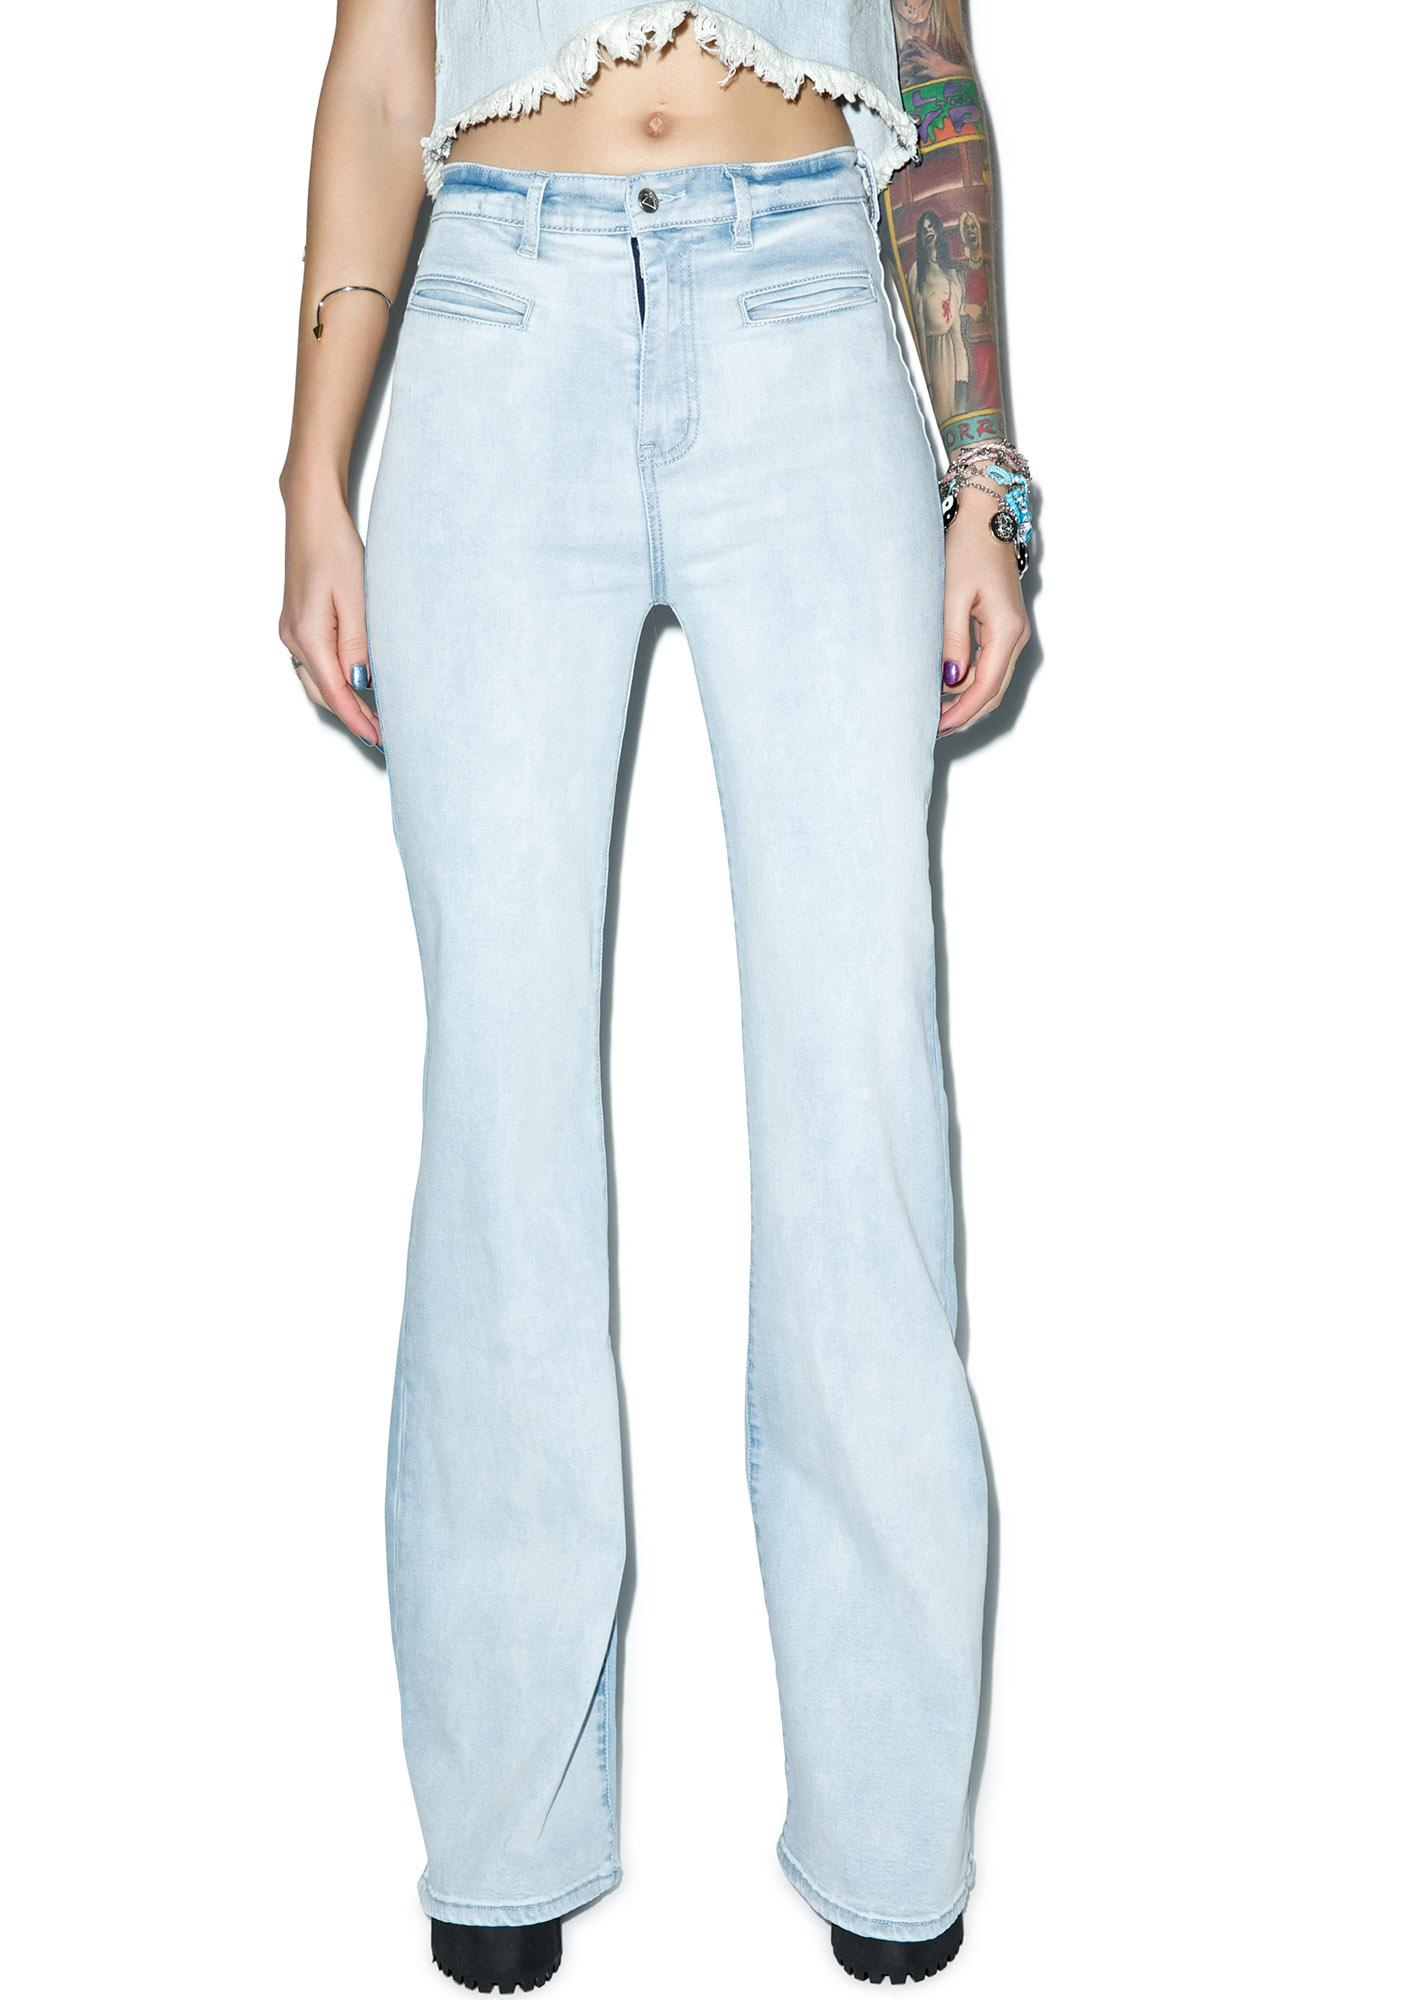 Somedays Lovin Daze Stretch Denim Flares